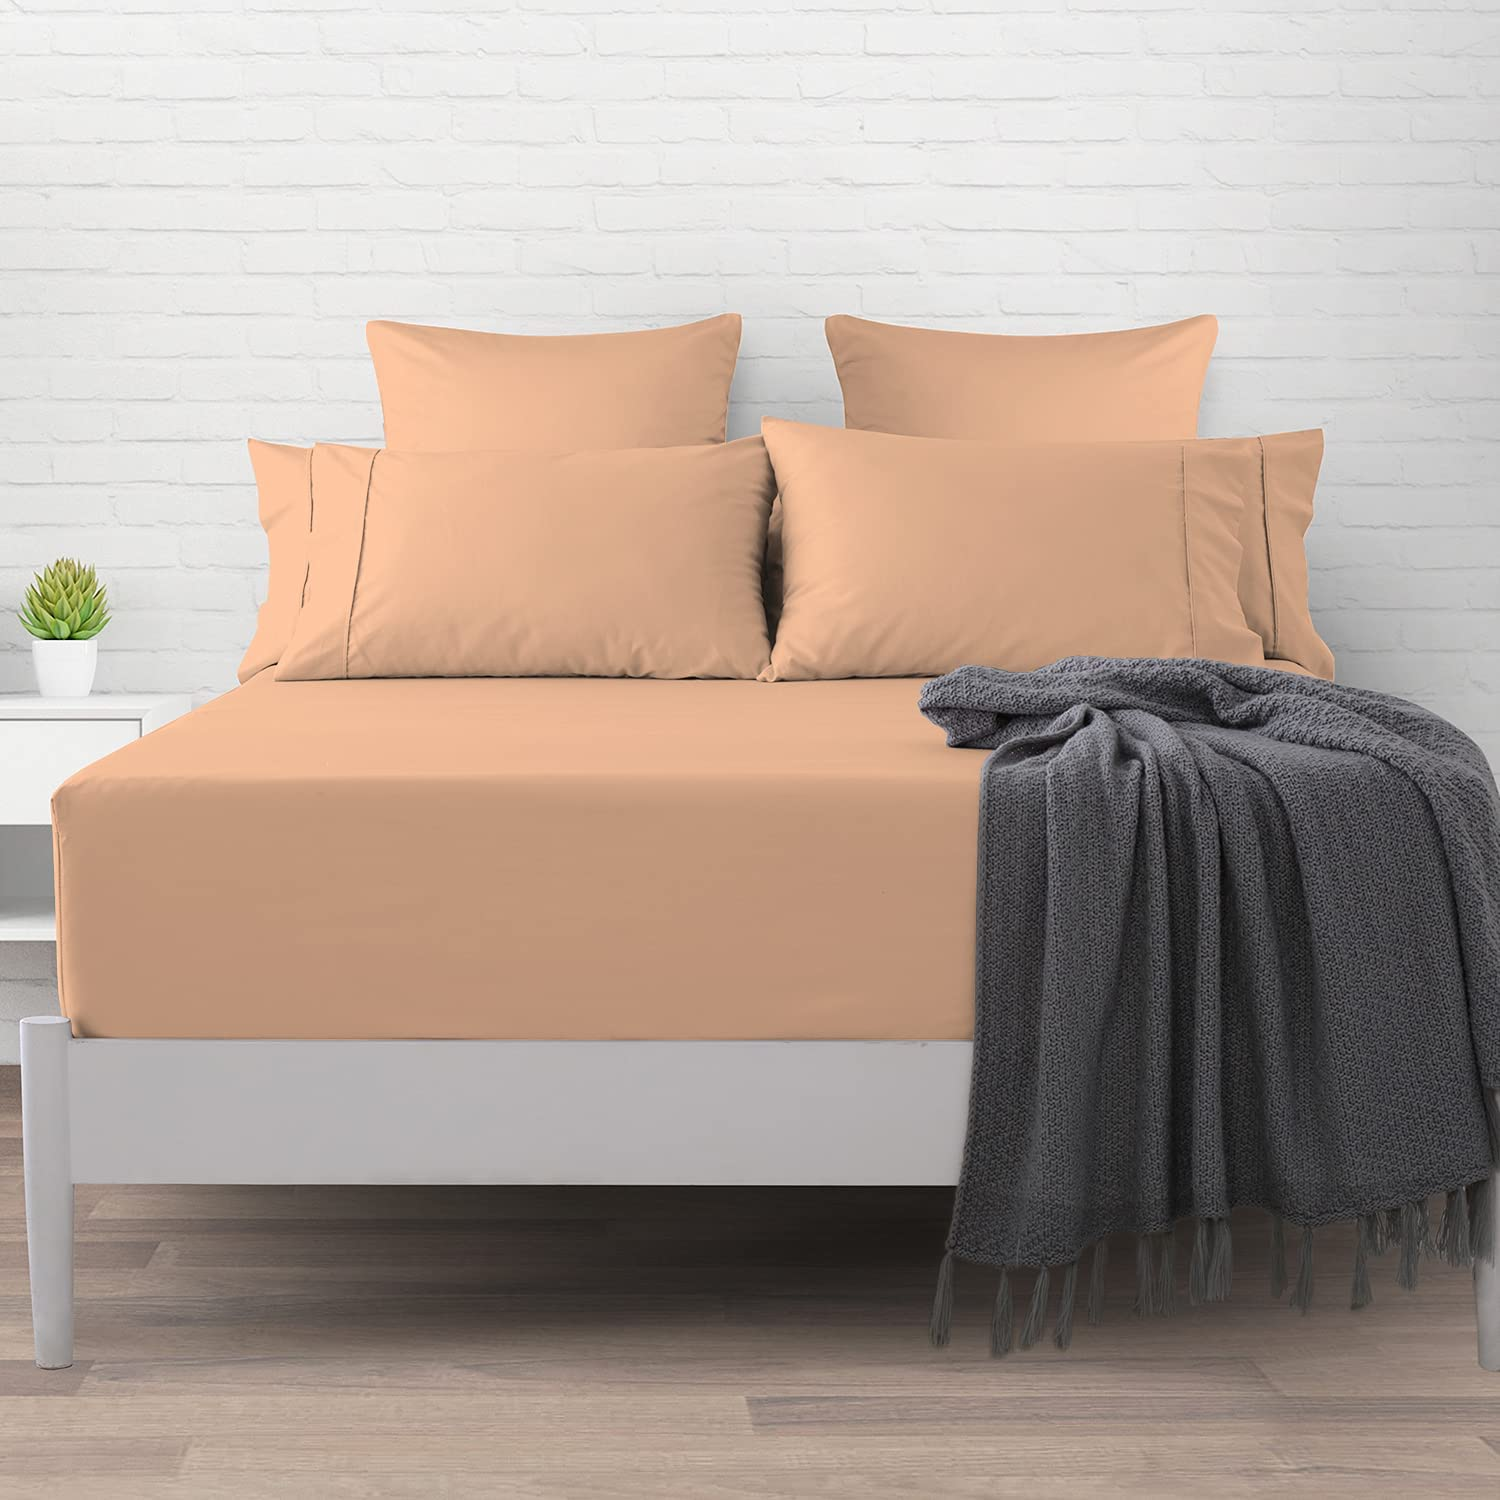 Soft 400 Thread Count Cotton Full Sheets 100% Direct store 1pc Orange Fitted Shipping included